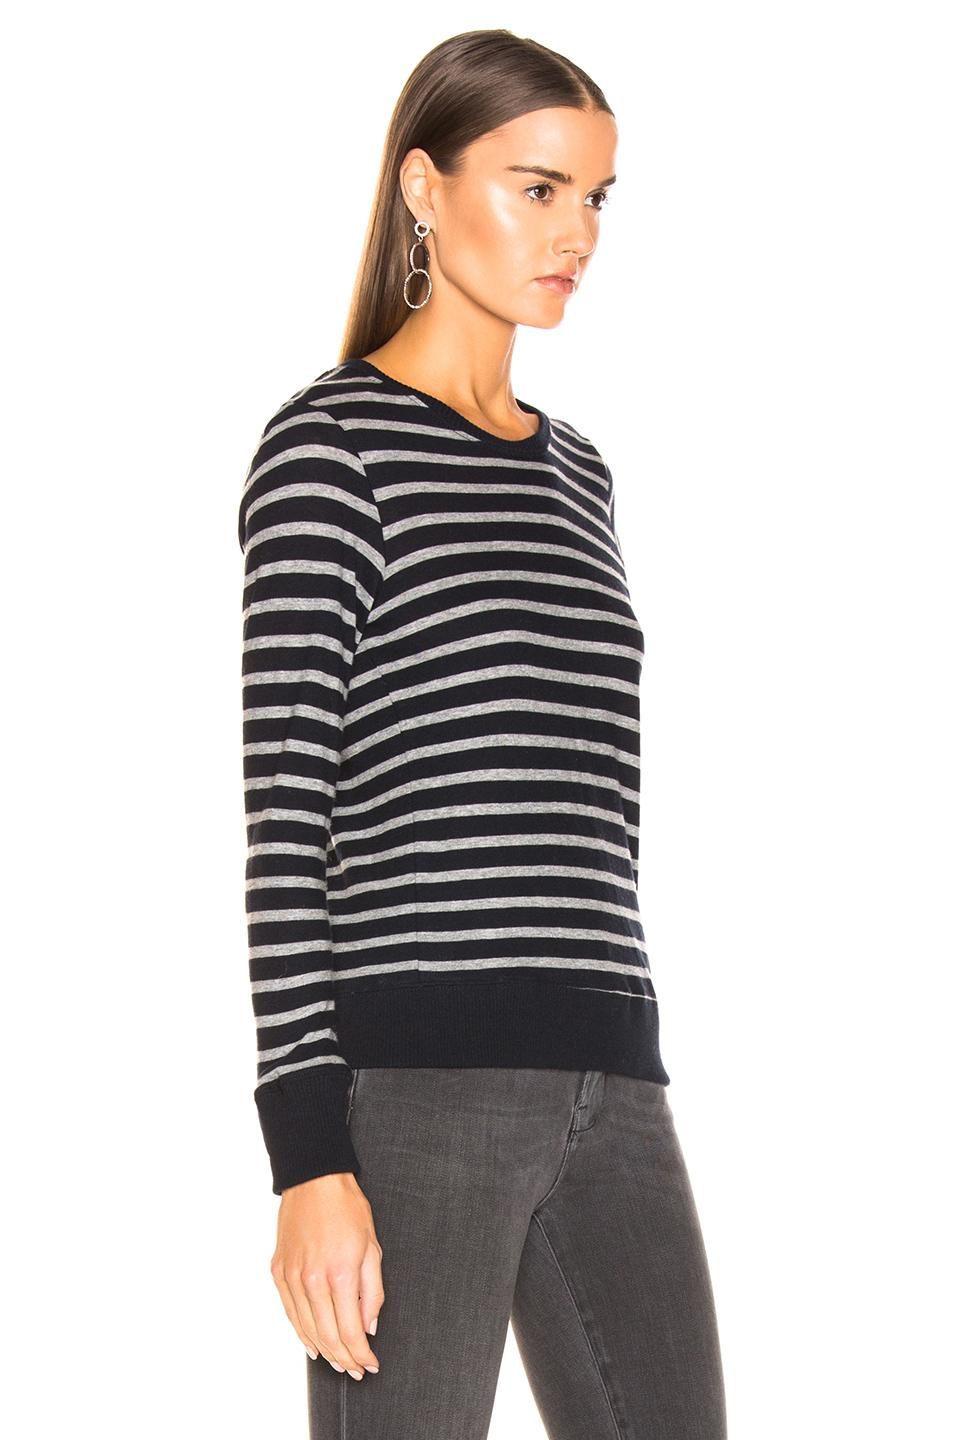 Enza Costa - Black Cashmere Easy Sweatshirt - Lyst. View fullscreen 23c5b9664